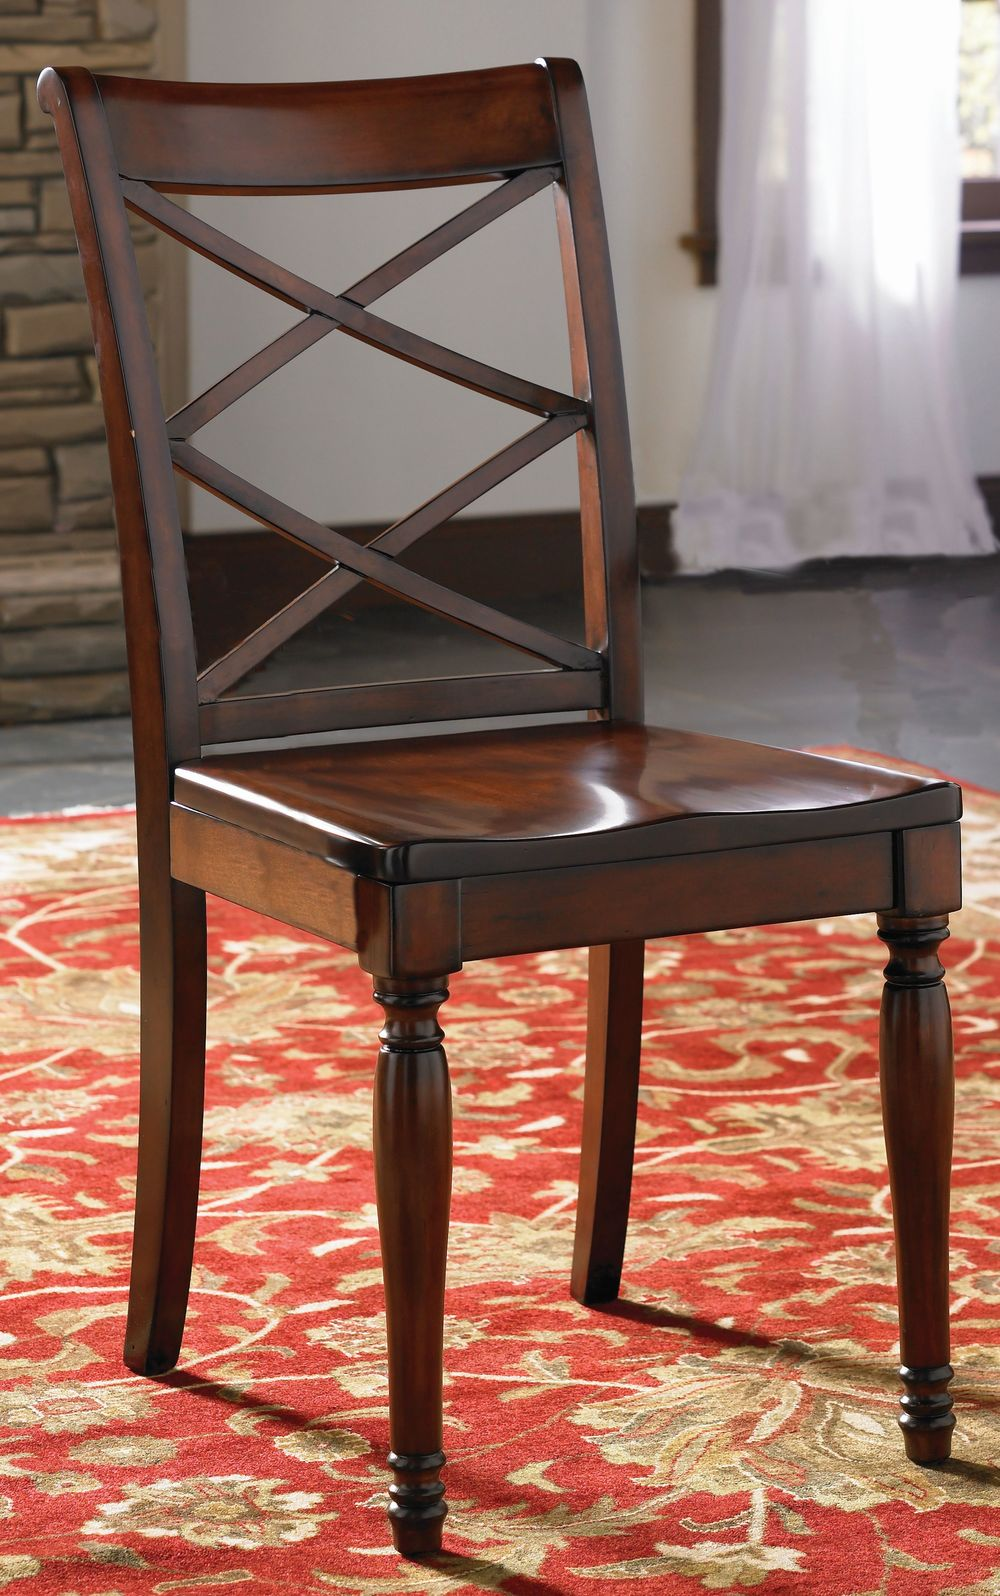 ASPENHOME - Double-X Wooden Side Chair